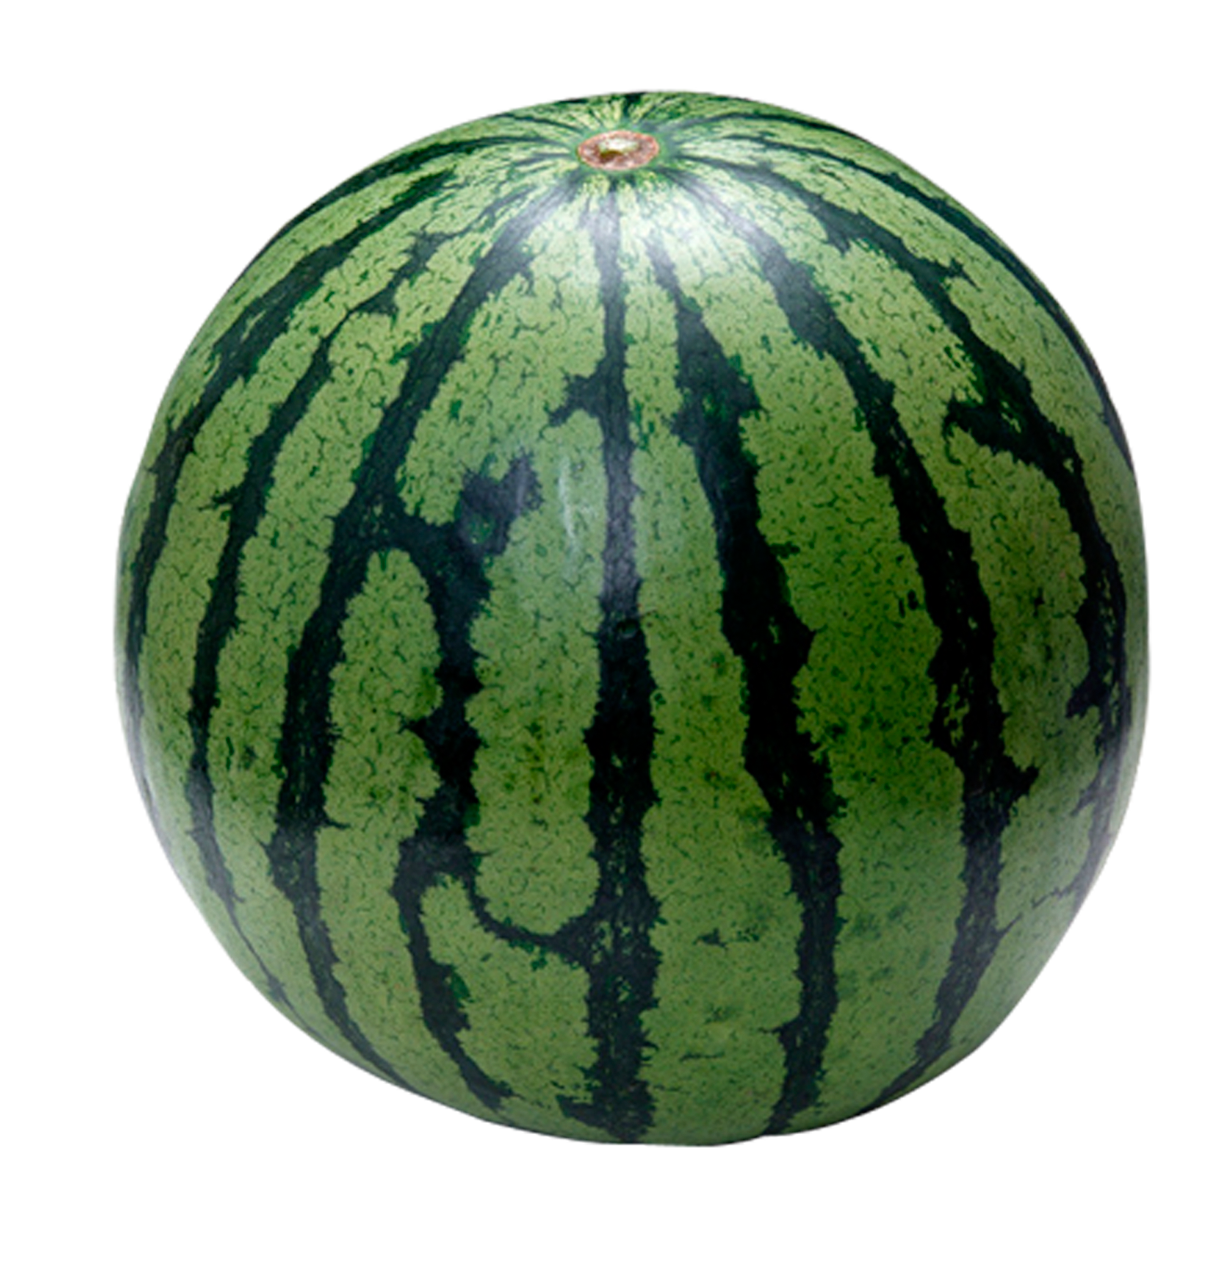 Watermelon stripes png. Iced tea green earl